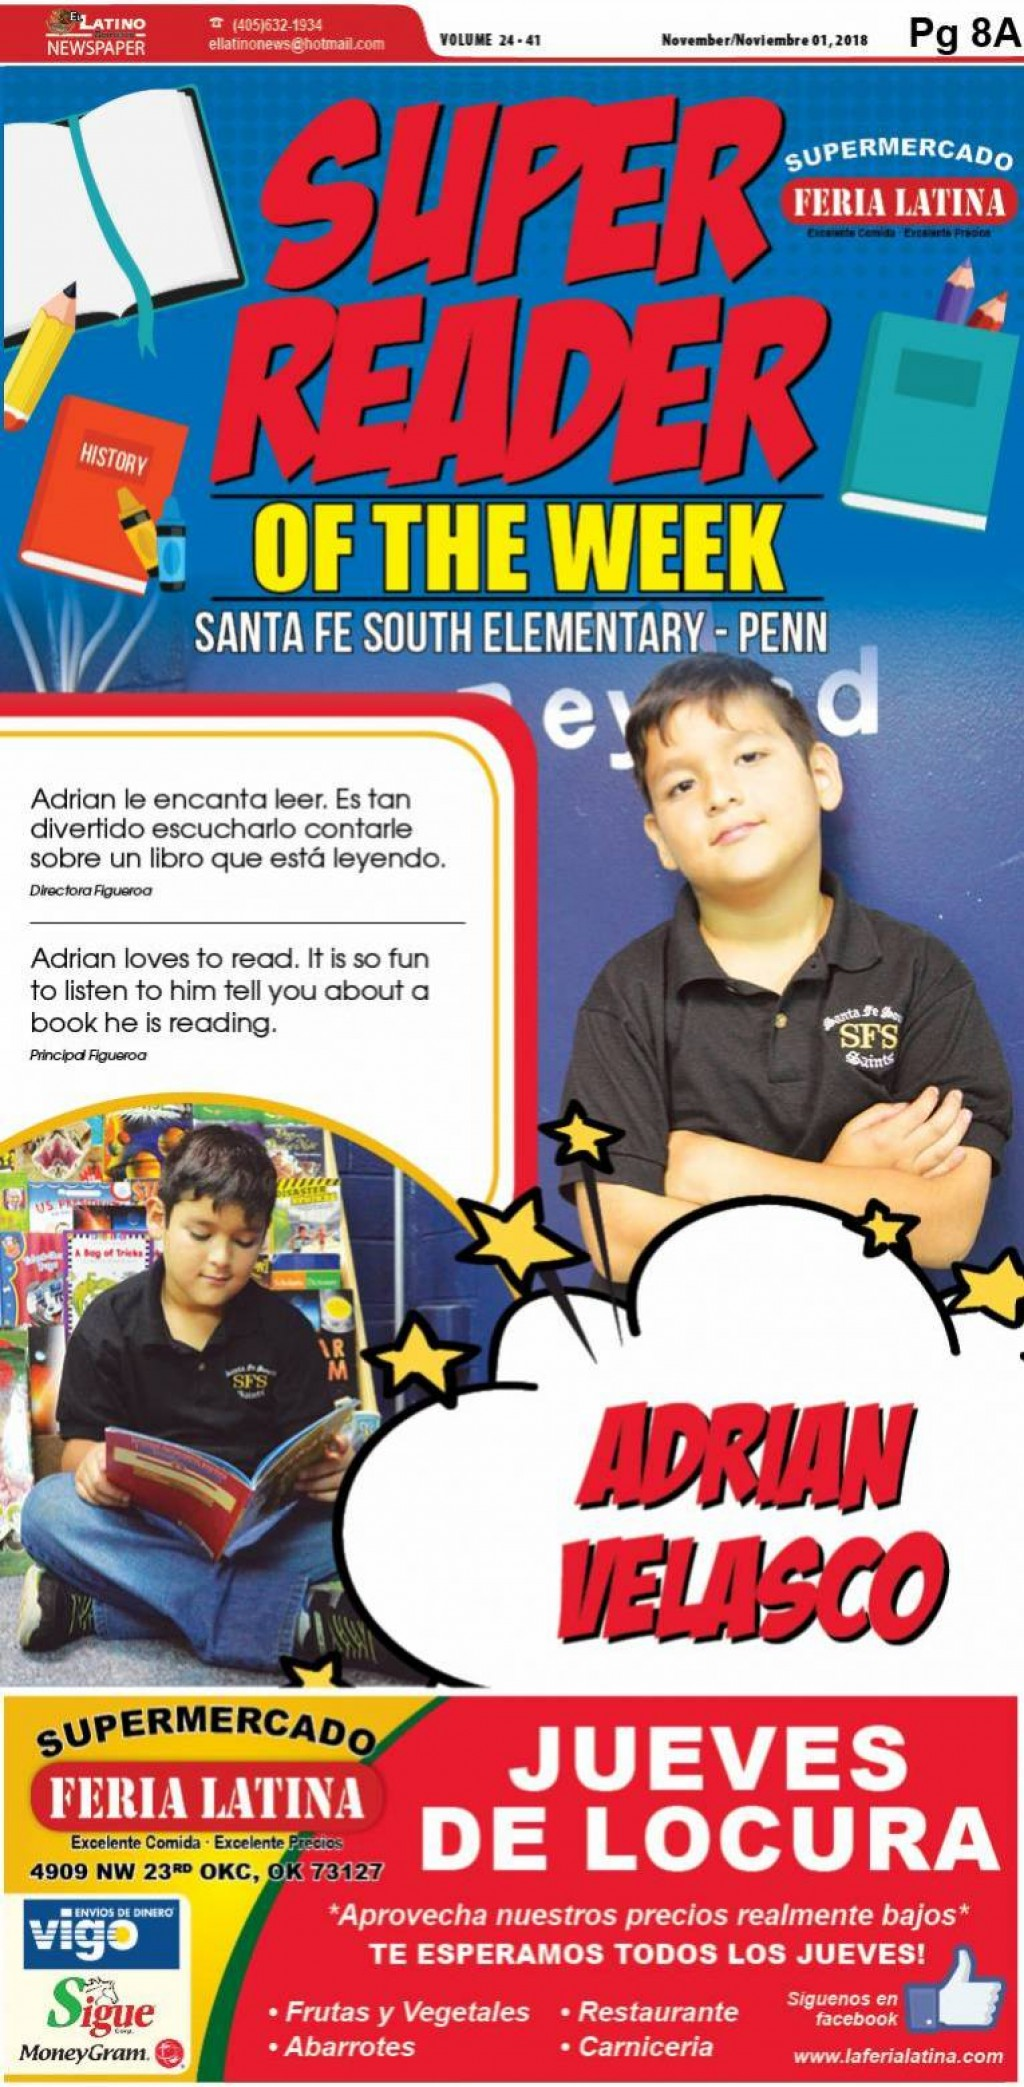 Super Reader of the Week: Adrian Velasco